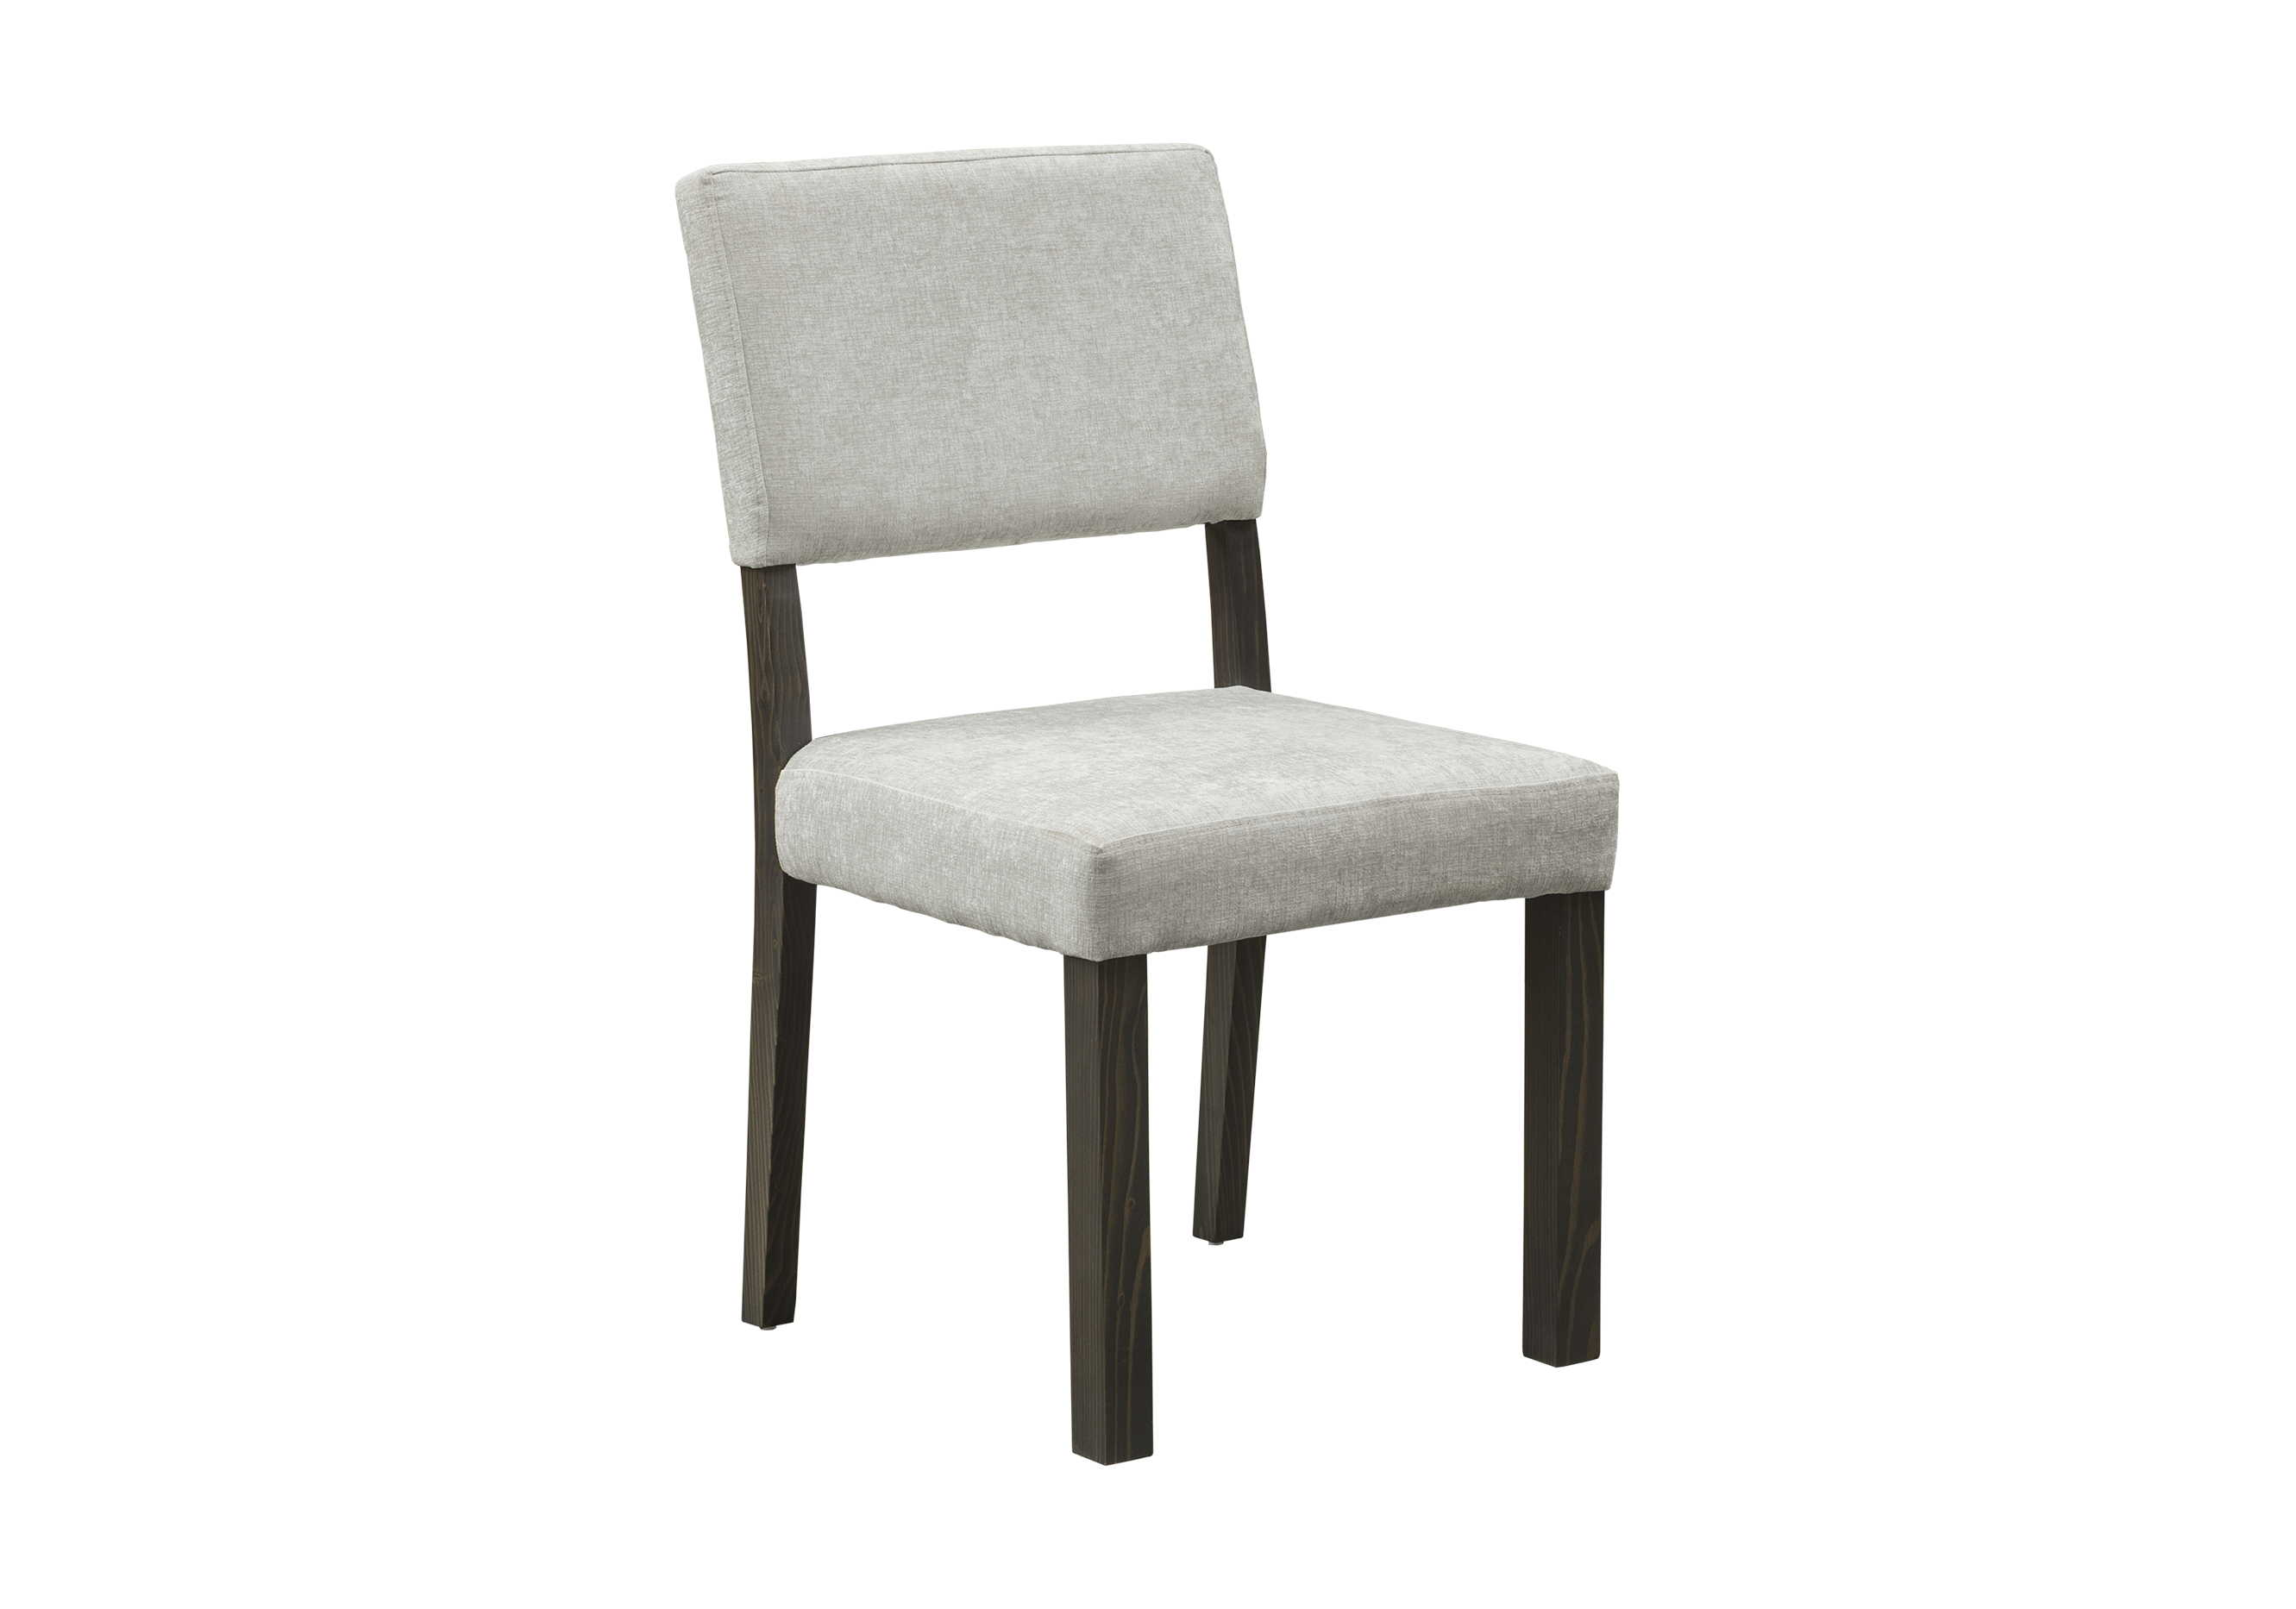 Chairs C-302